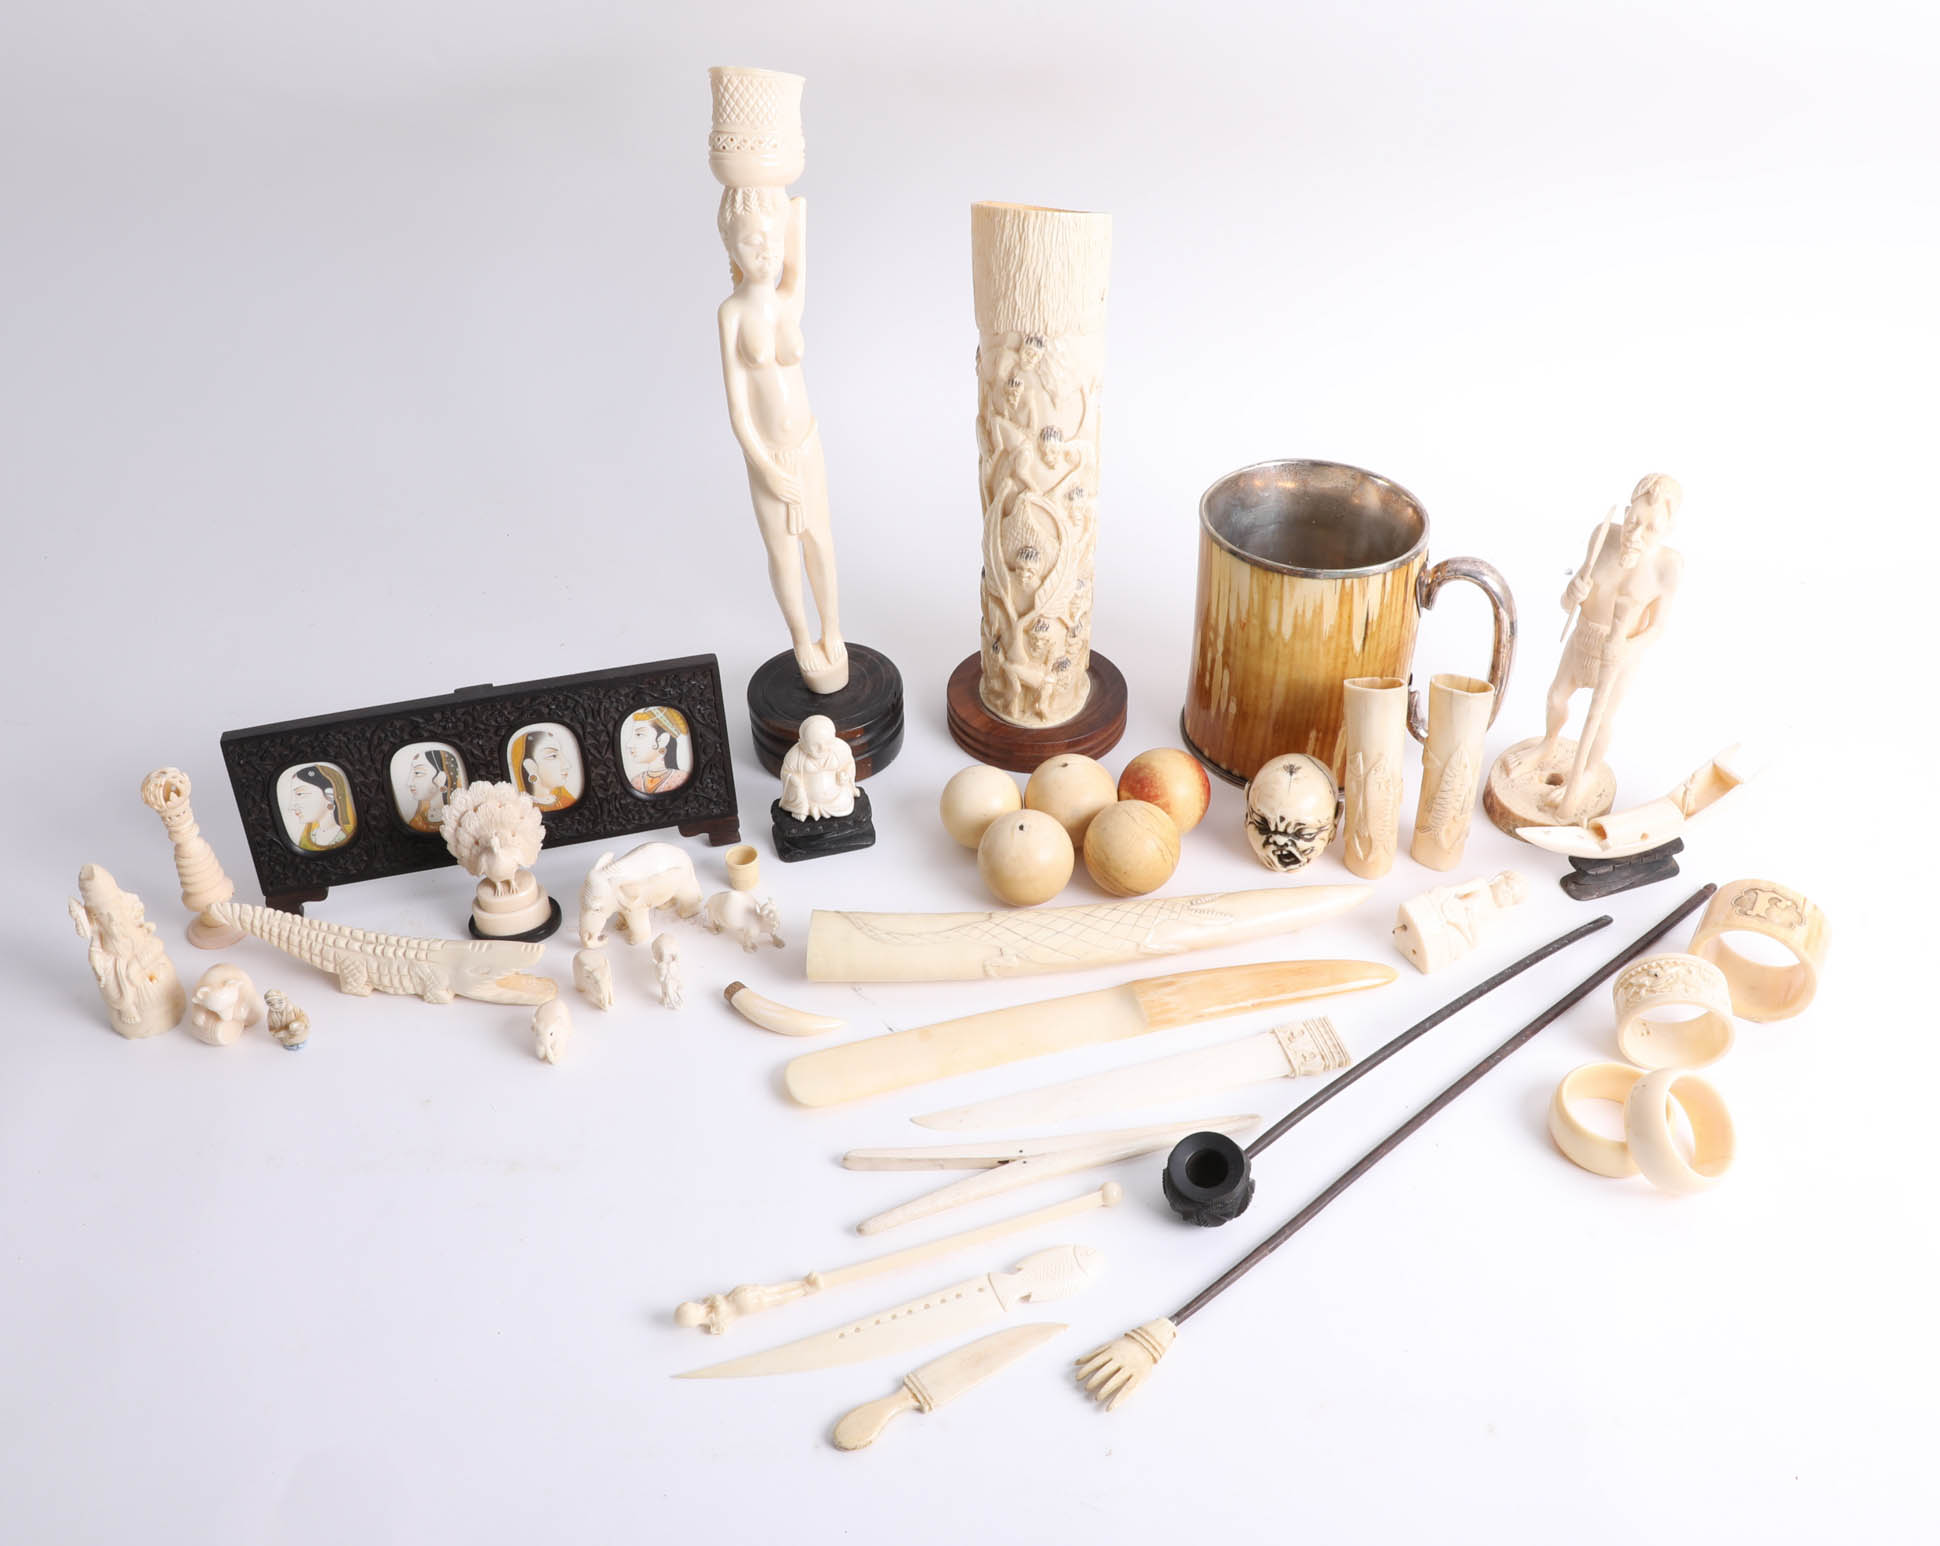 Collection of various antique carved ivory/bone objects.